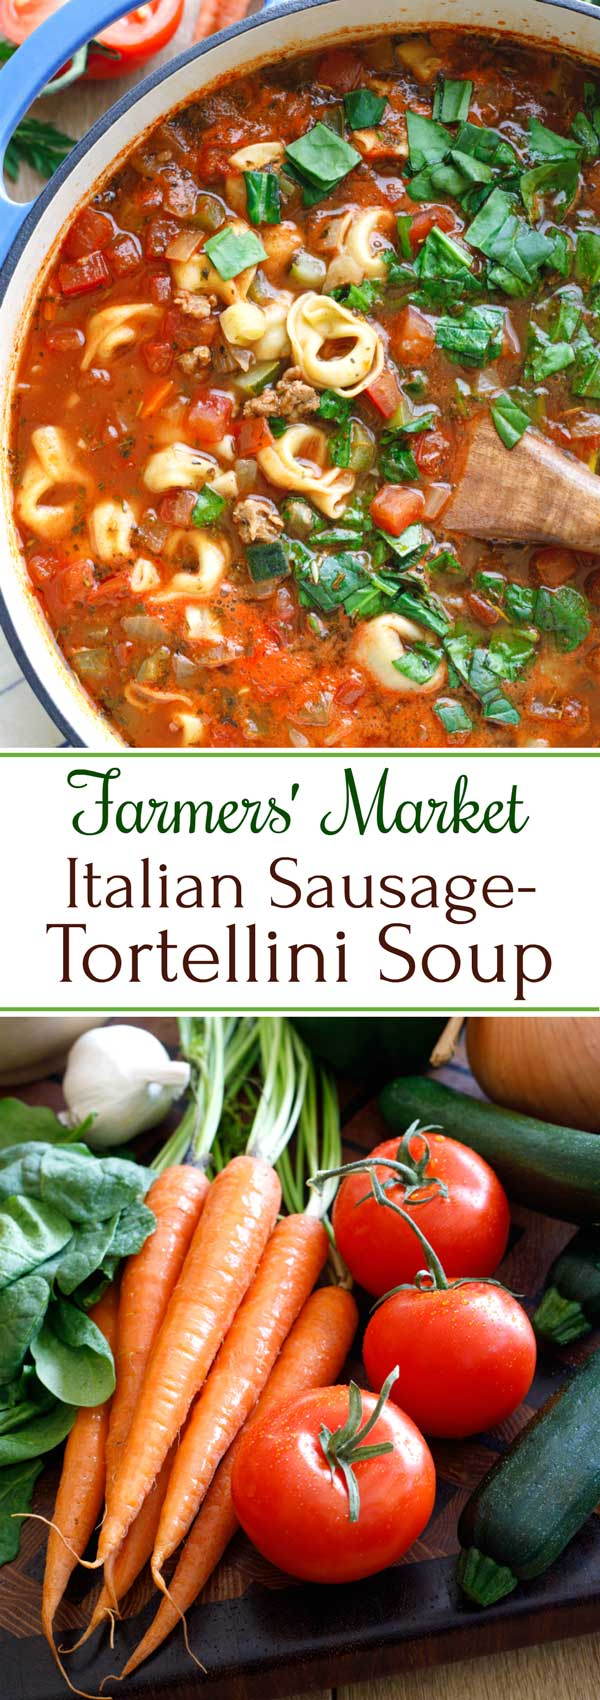 Richly flavorful and so satisfying! This Farmers' Market Italian Sausage-Tortellini Soup recipe is brimming with savory sausage, pillowy tortellini, and lots of vibrant, fresh veggies! Absolutely delicious – a beloved family favorite! Hearty enough for a winter supper, yet light enough for warmer months, too - perfect all year 'round. Try this quick, easy recipe your whole family will love! | tortellini recipes | soup recipes | soup recipes healthy | vegetable soup | www.TwoHealthyKitchens.com